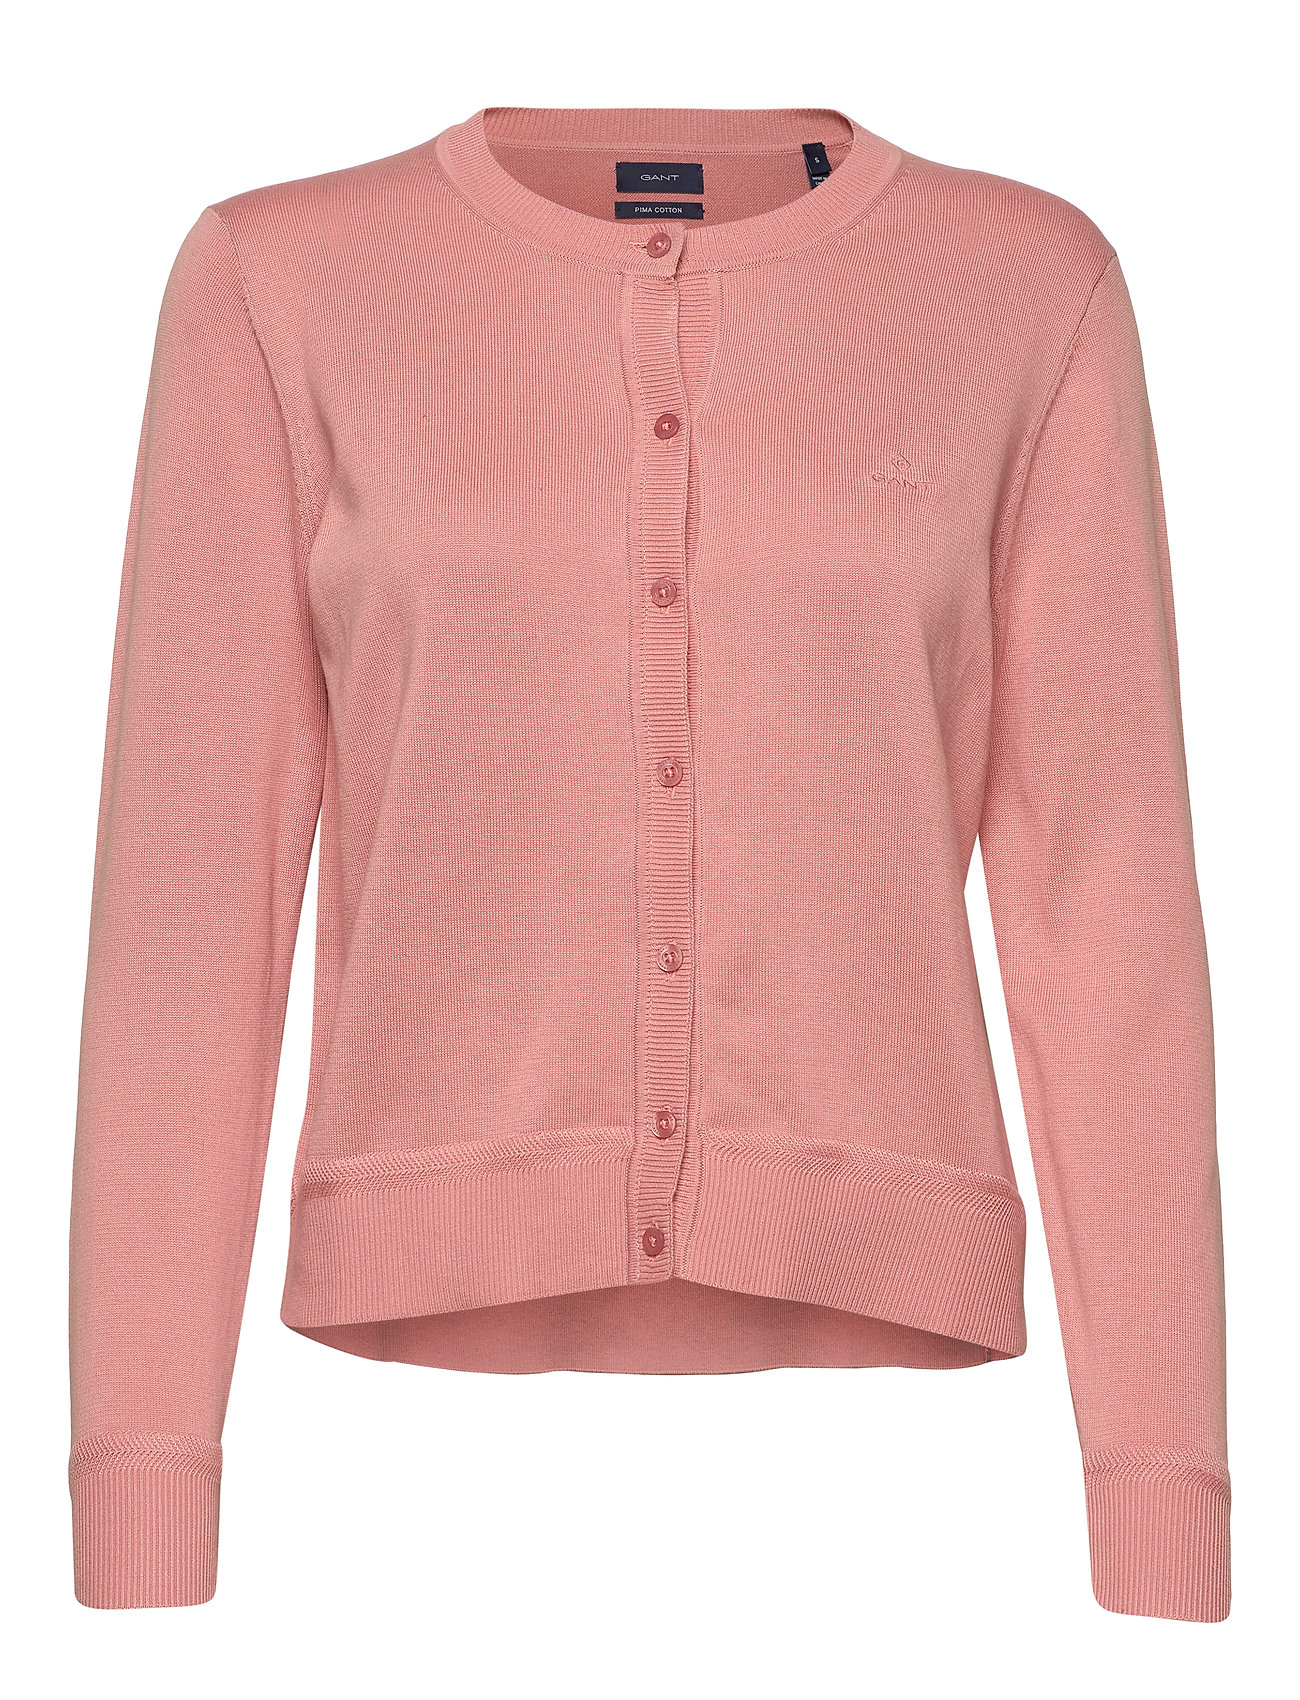 Gant LIGHT COTTON CREW CARDIGAN - SUMMER ROSE